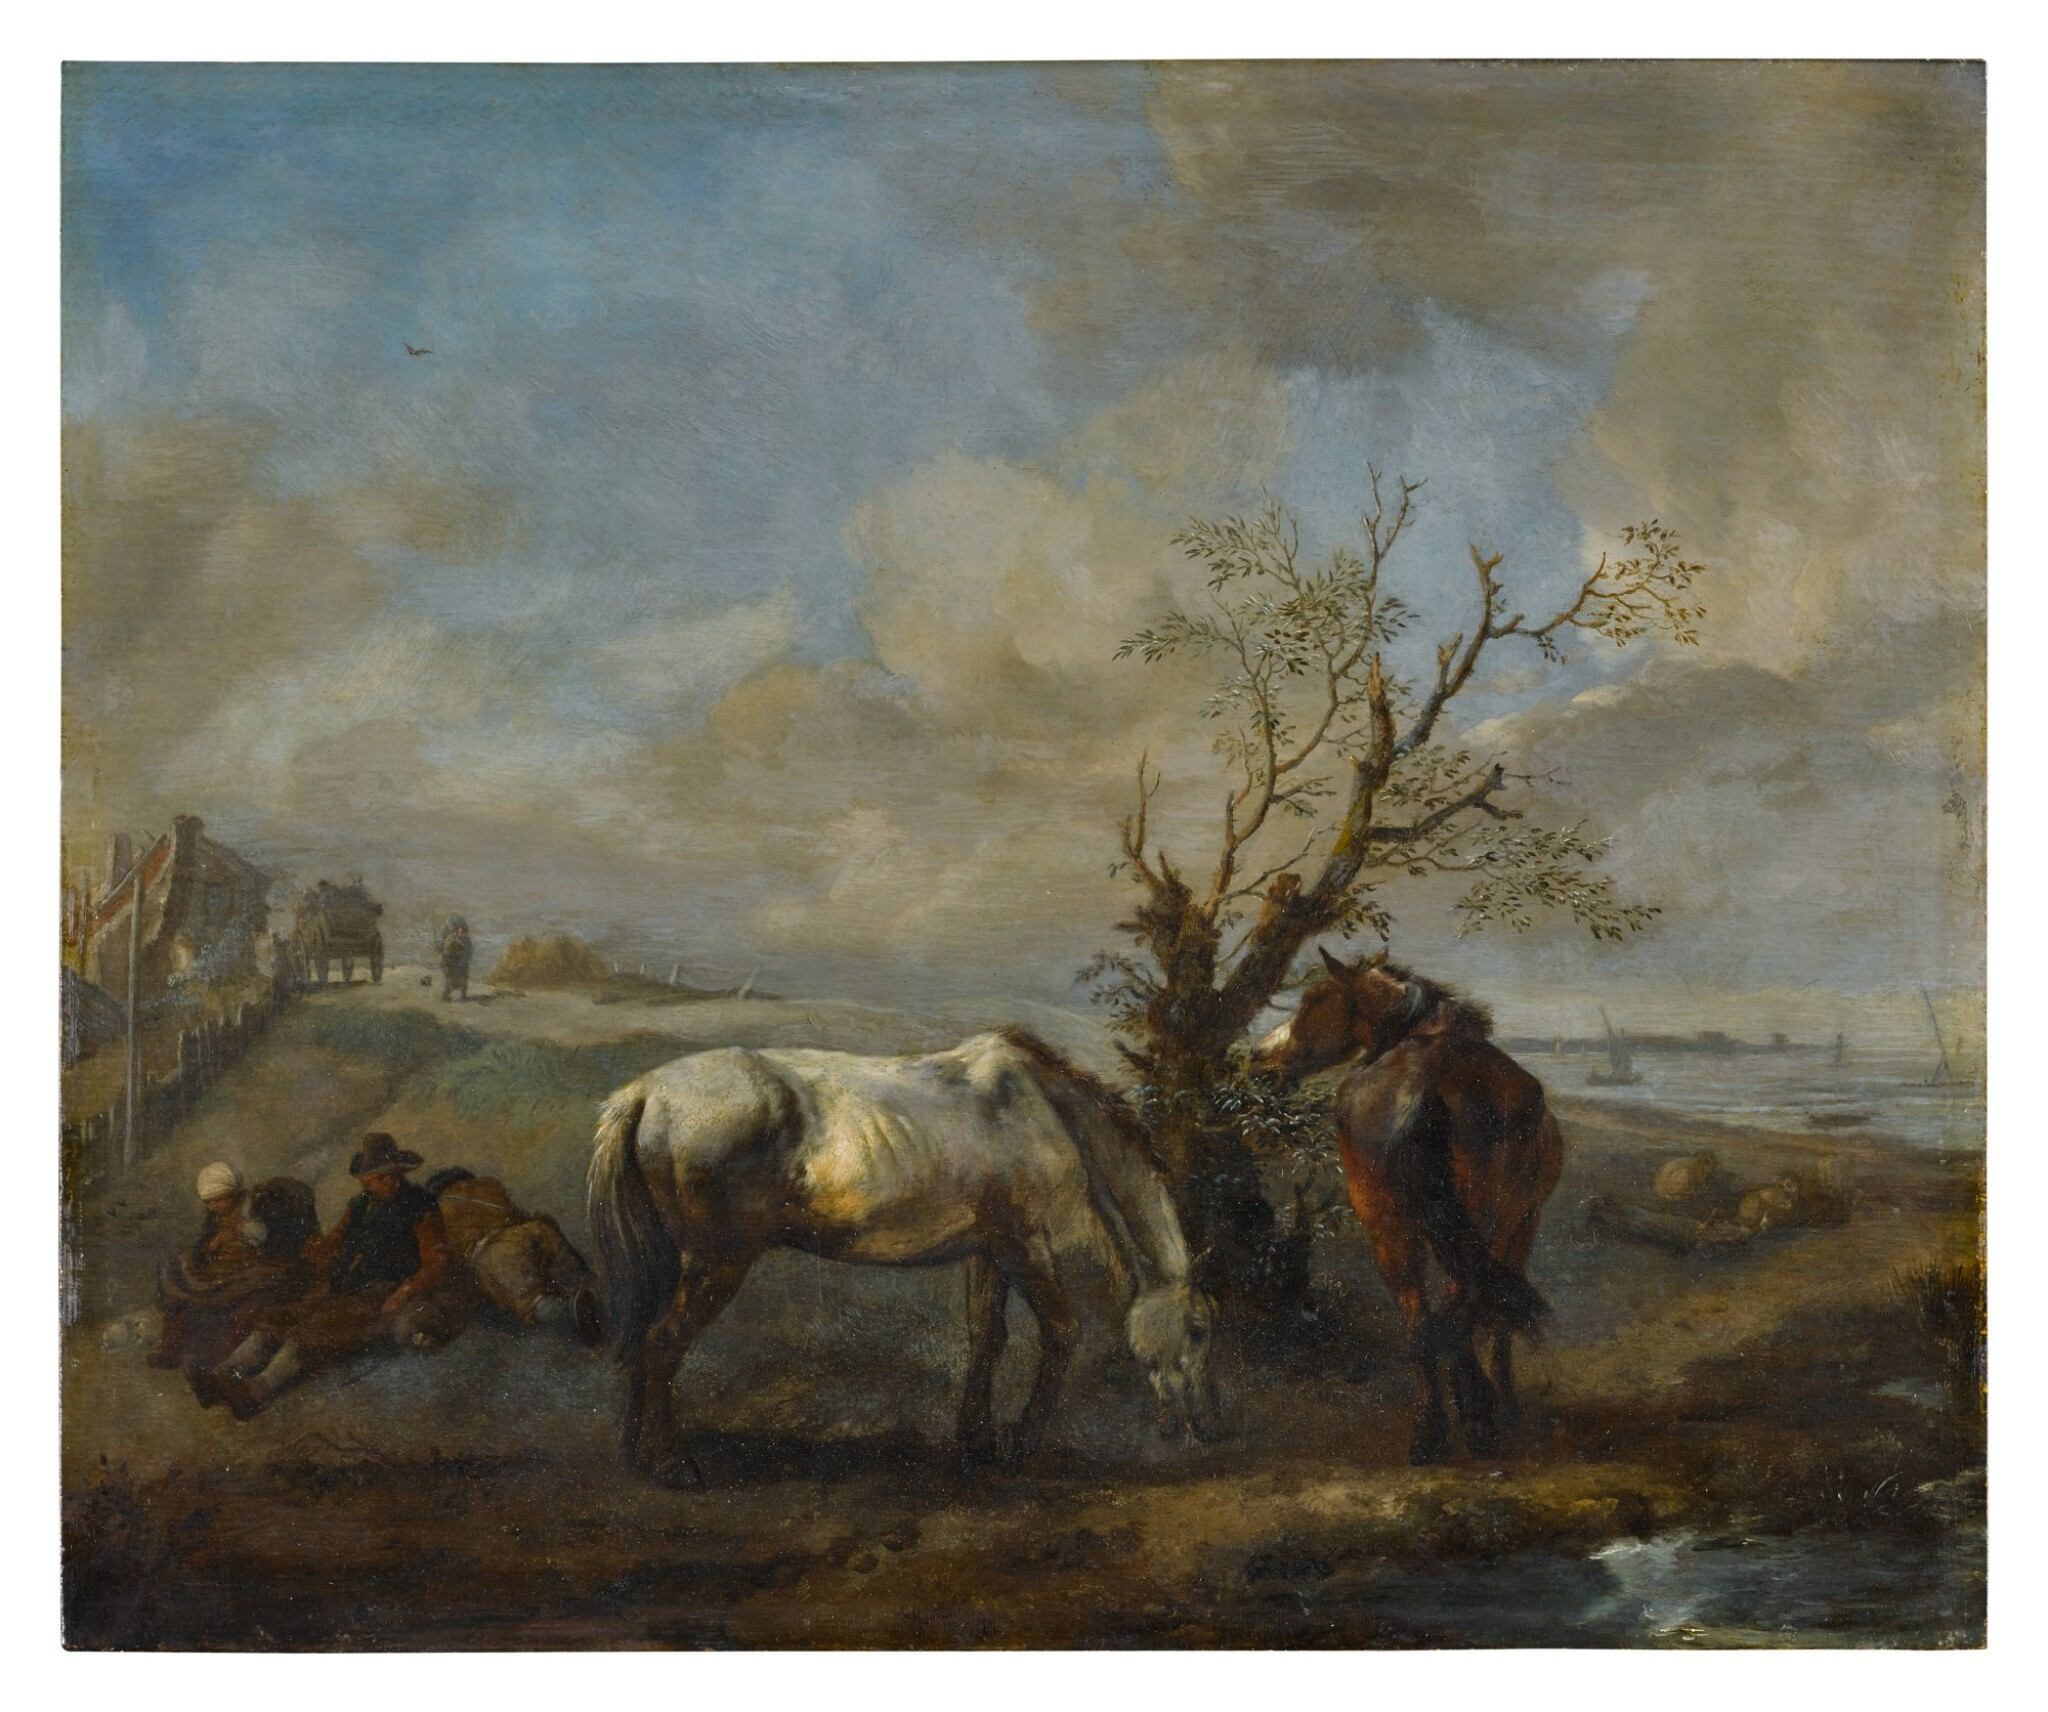 View full screen - View 1 of Lot 2. PHILIPS WOUWERMAN     TWO HORSES RESTING BY A TREE AND A STREAM, WITH SEATED TRAVELERS NEARBY.